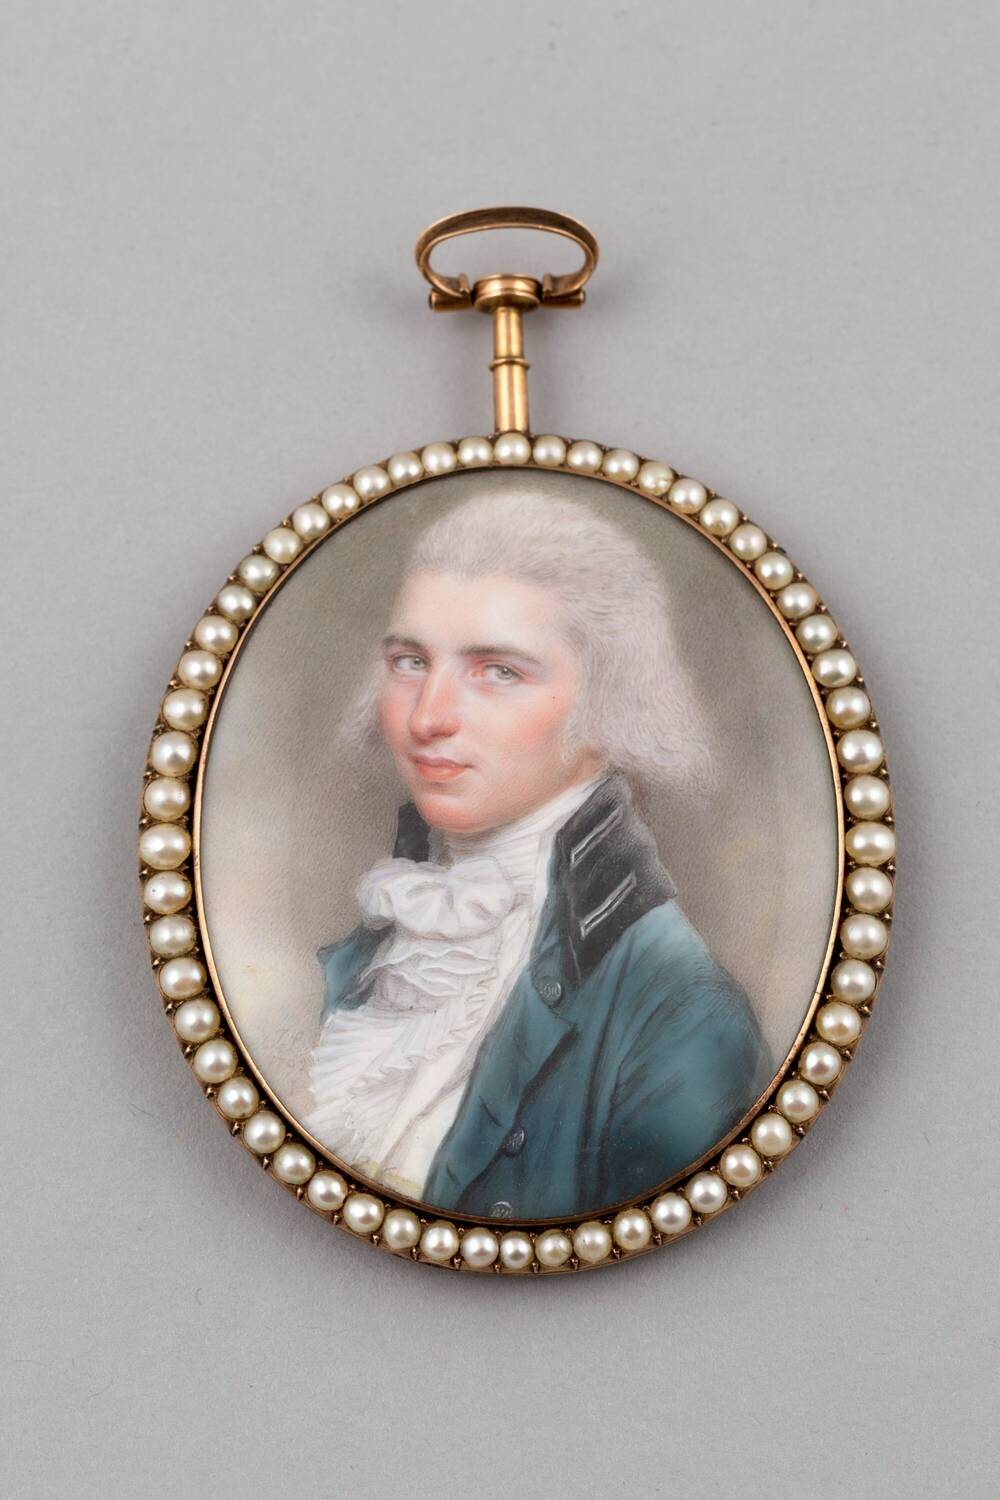 Miniature showing the head and shoulders of a man in a white powdered wig, wearing a blue jacket and a white shirt, with a large bow at the neck. The miniature is studded with pearls round the edge.